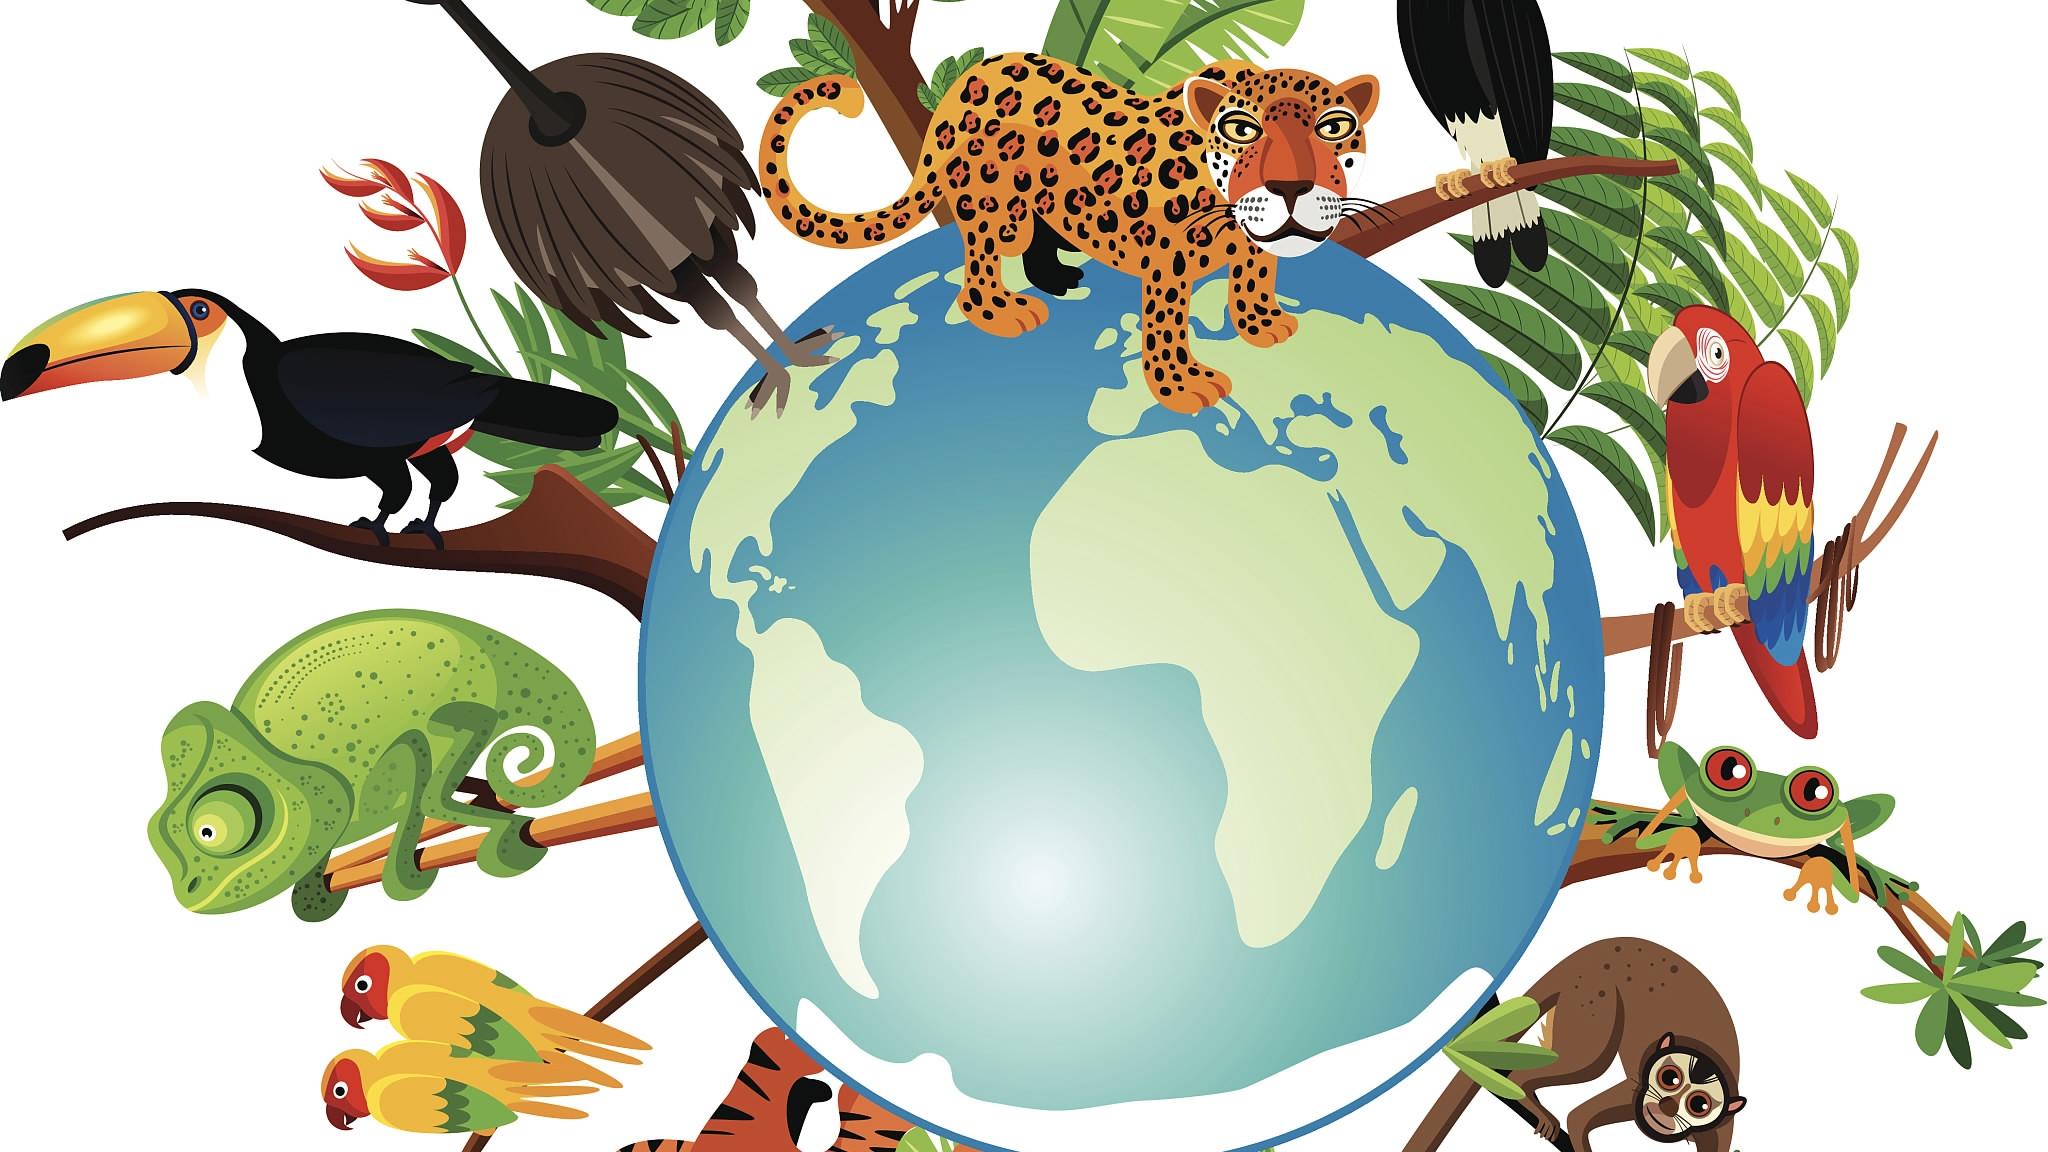 New approach needed to raise value of biodiversity